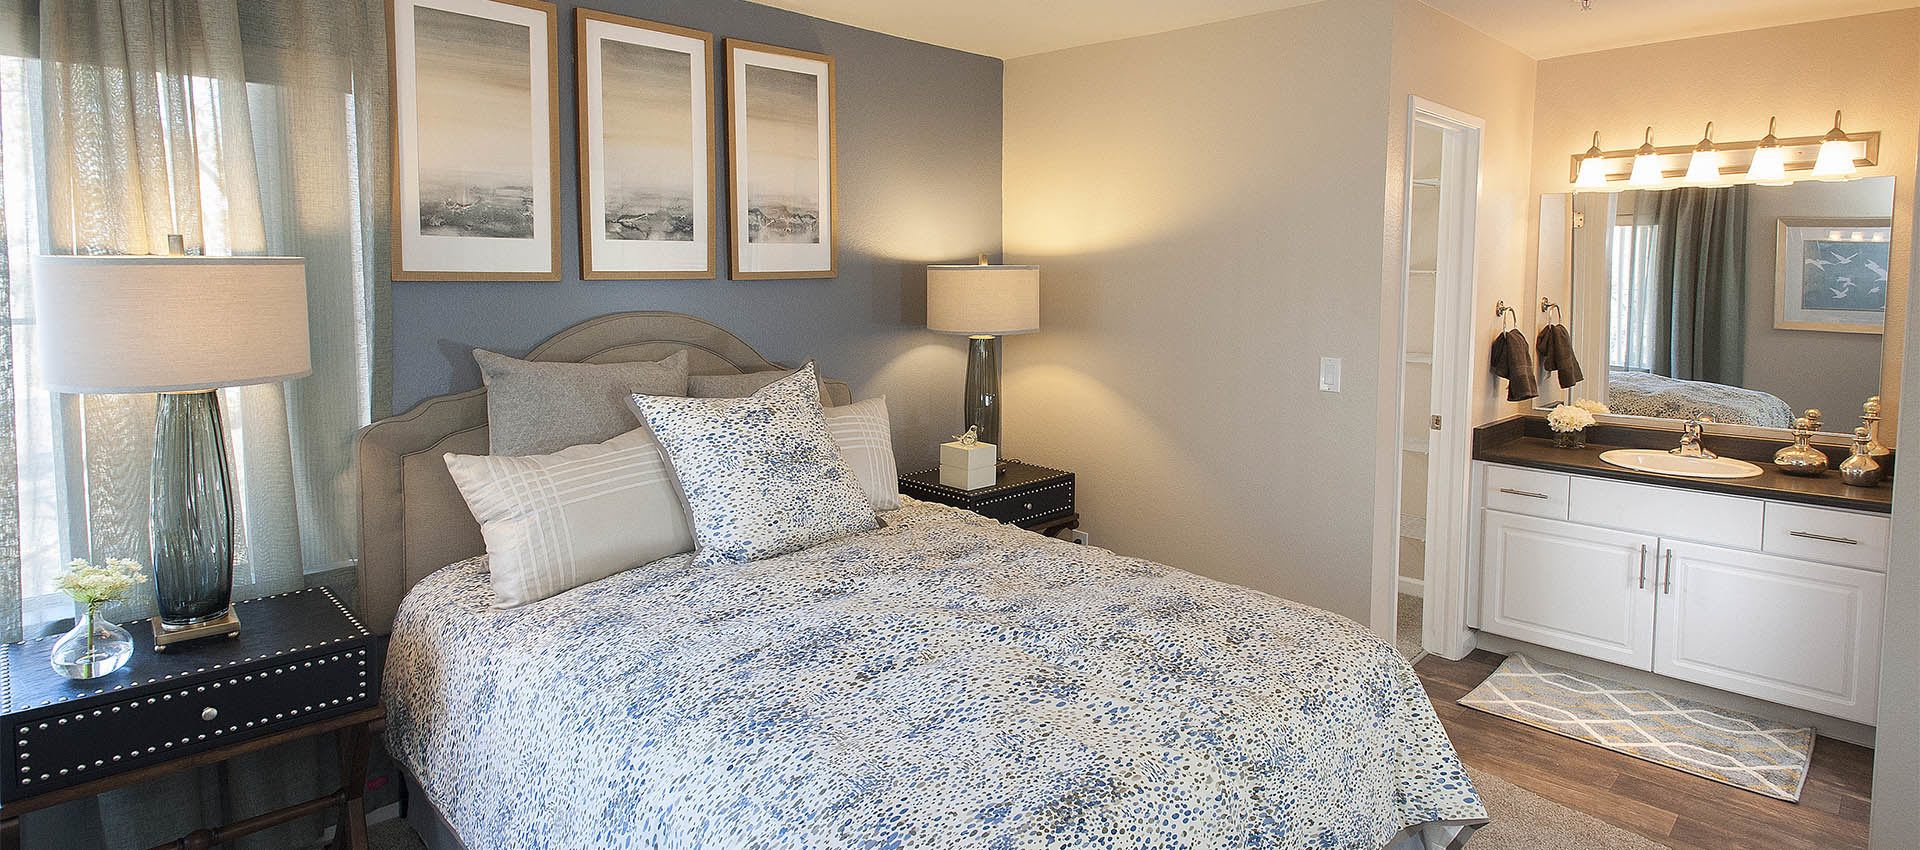 Mill Springs Park Apartment Homes Apartments offer Large Master Bedrooms